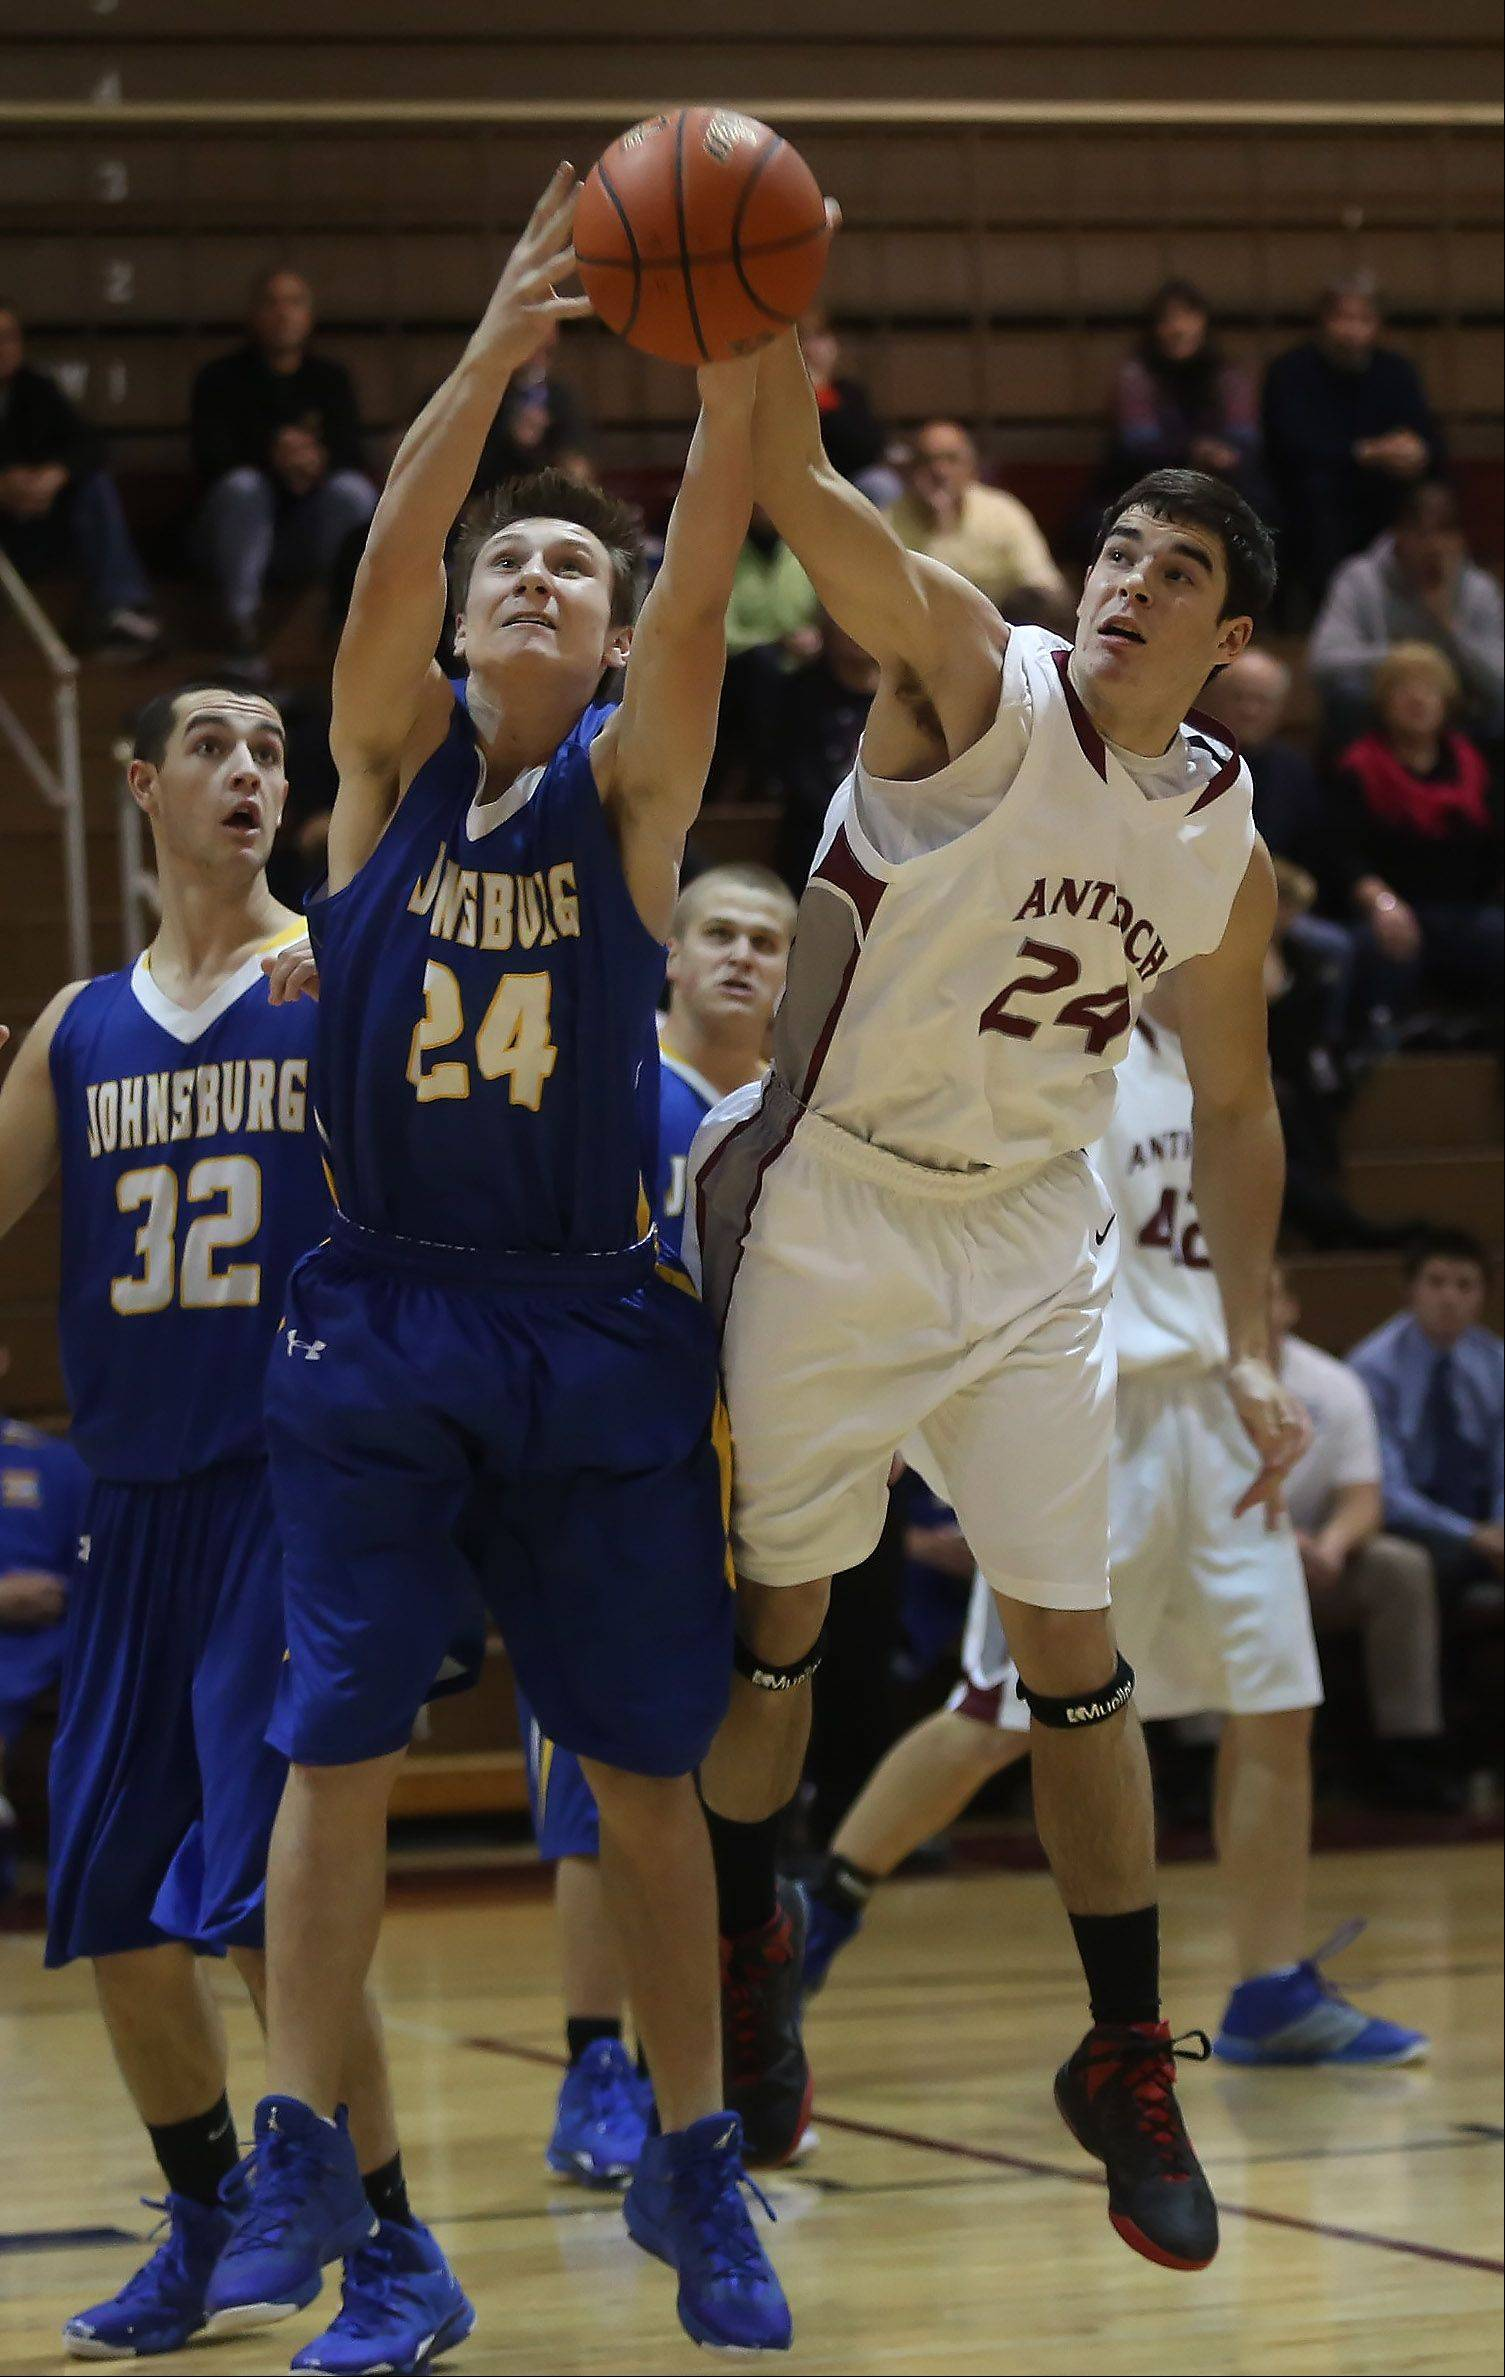 Antioch forward Kyle Gofron battles Johnsburg forward Alec Graef for the rebound during Thursday's game at Antioch.